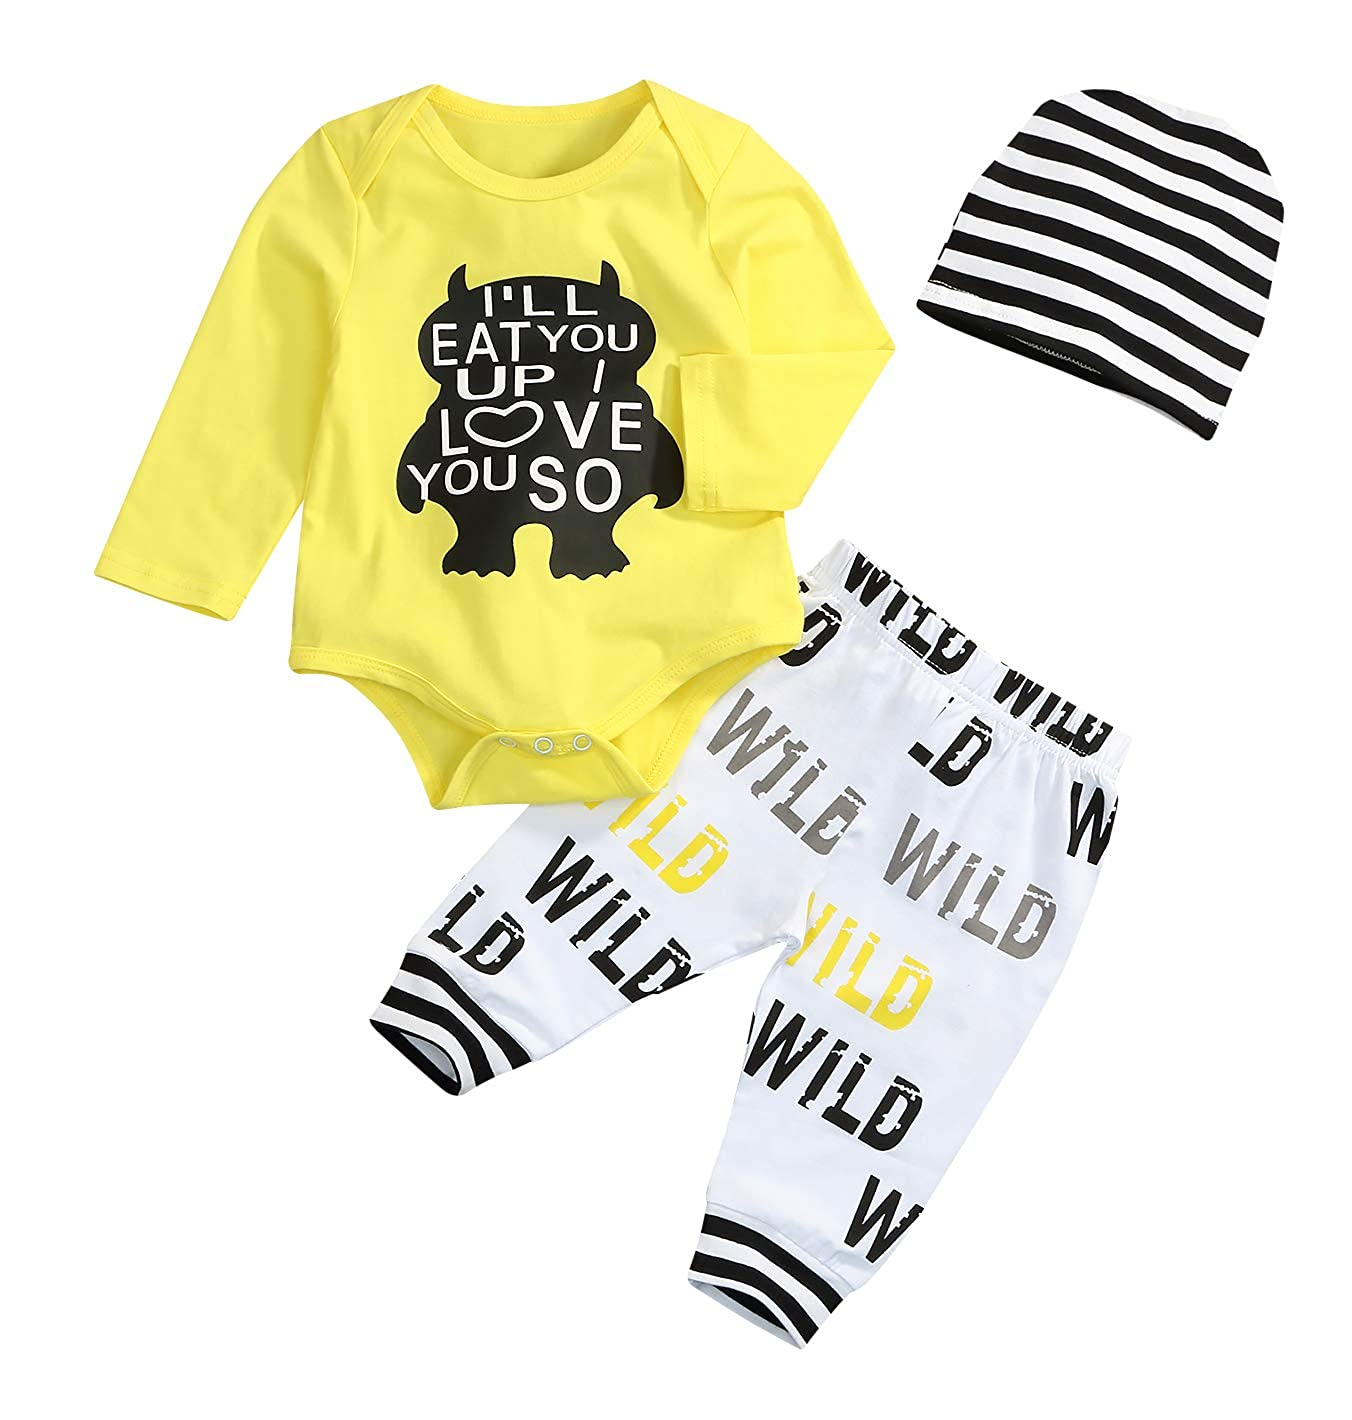 e09bec1687aa7 Toddler Baby Boy Monster Cartoon Letter Sleeve Summer Short Sleeve Jumpsuit  Tops Pants Clothes Set